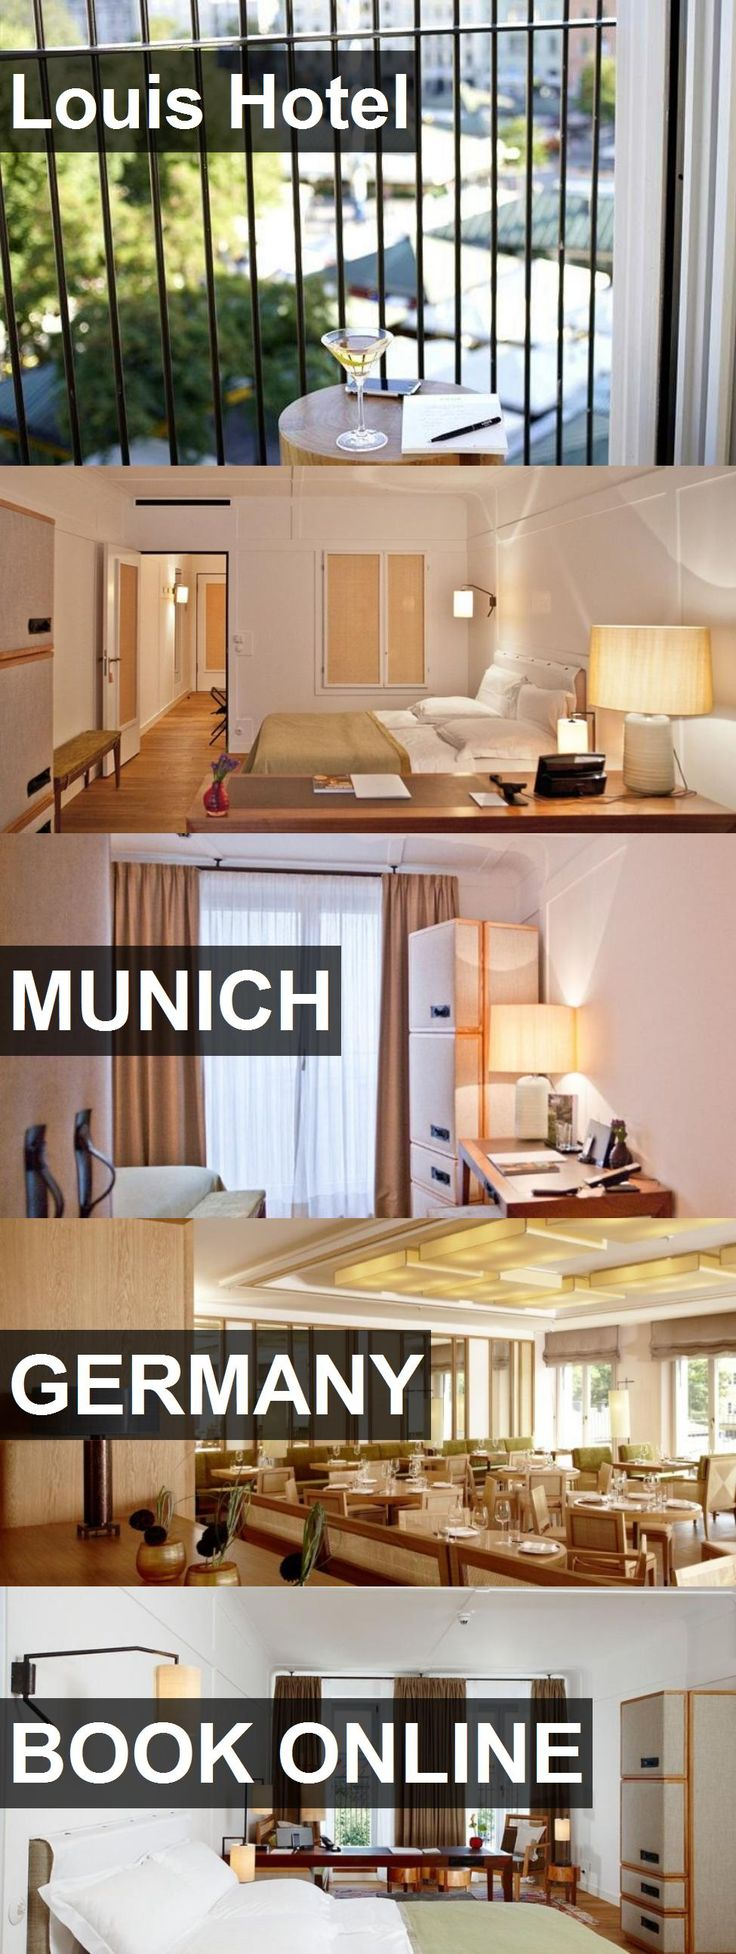 Hotel Louis Hotel in Munich, Germany. For more information, photos, reviews and best prices please follow the link. #Germany #Munich #LouisHotel #hotel #travel #vacation